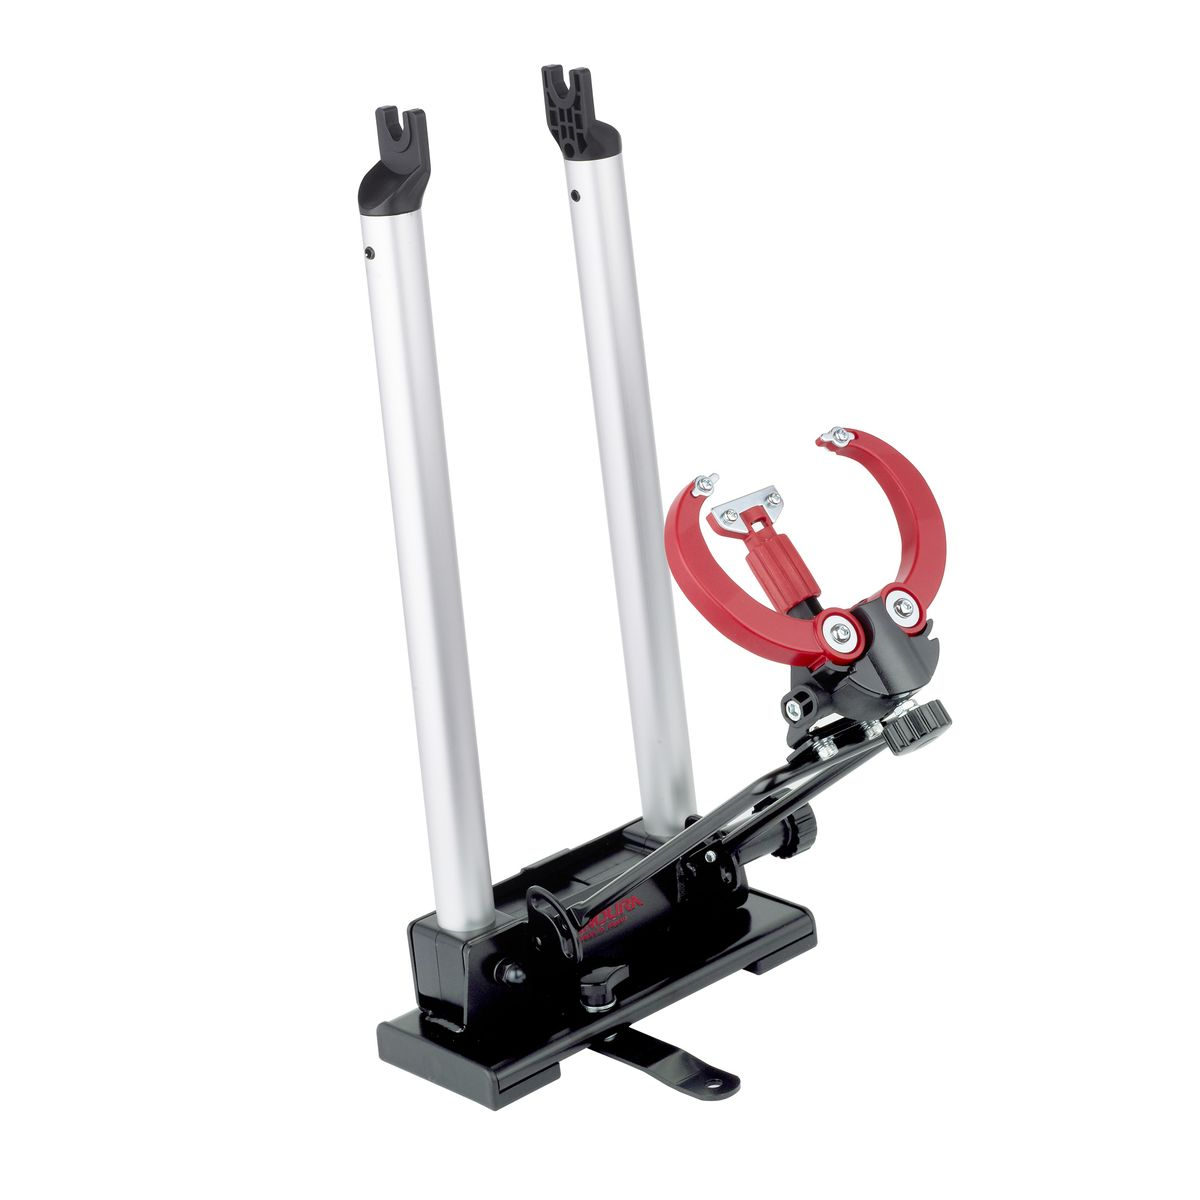 Minoura FT-1 truing stand incl. T-piece | item_misc